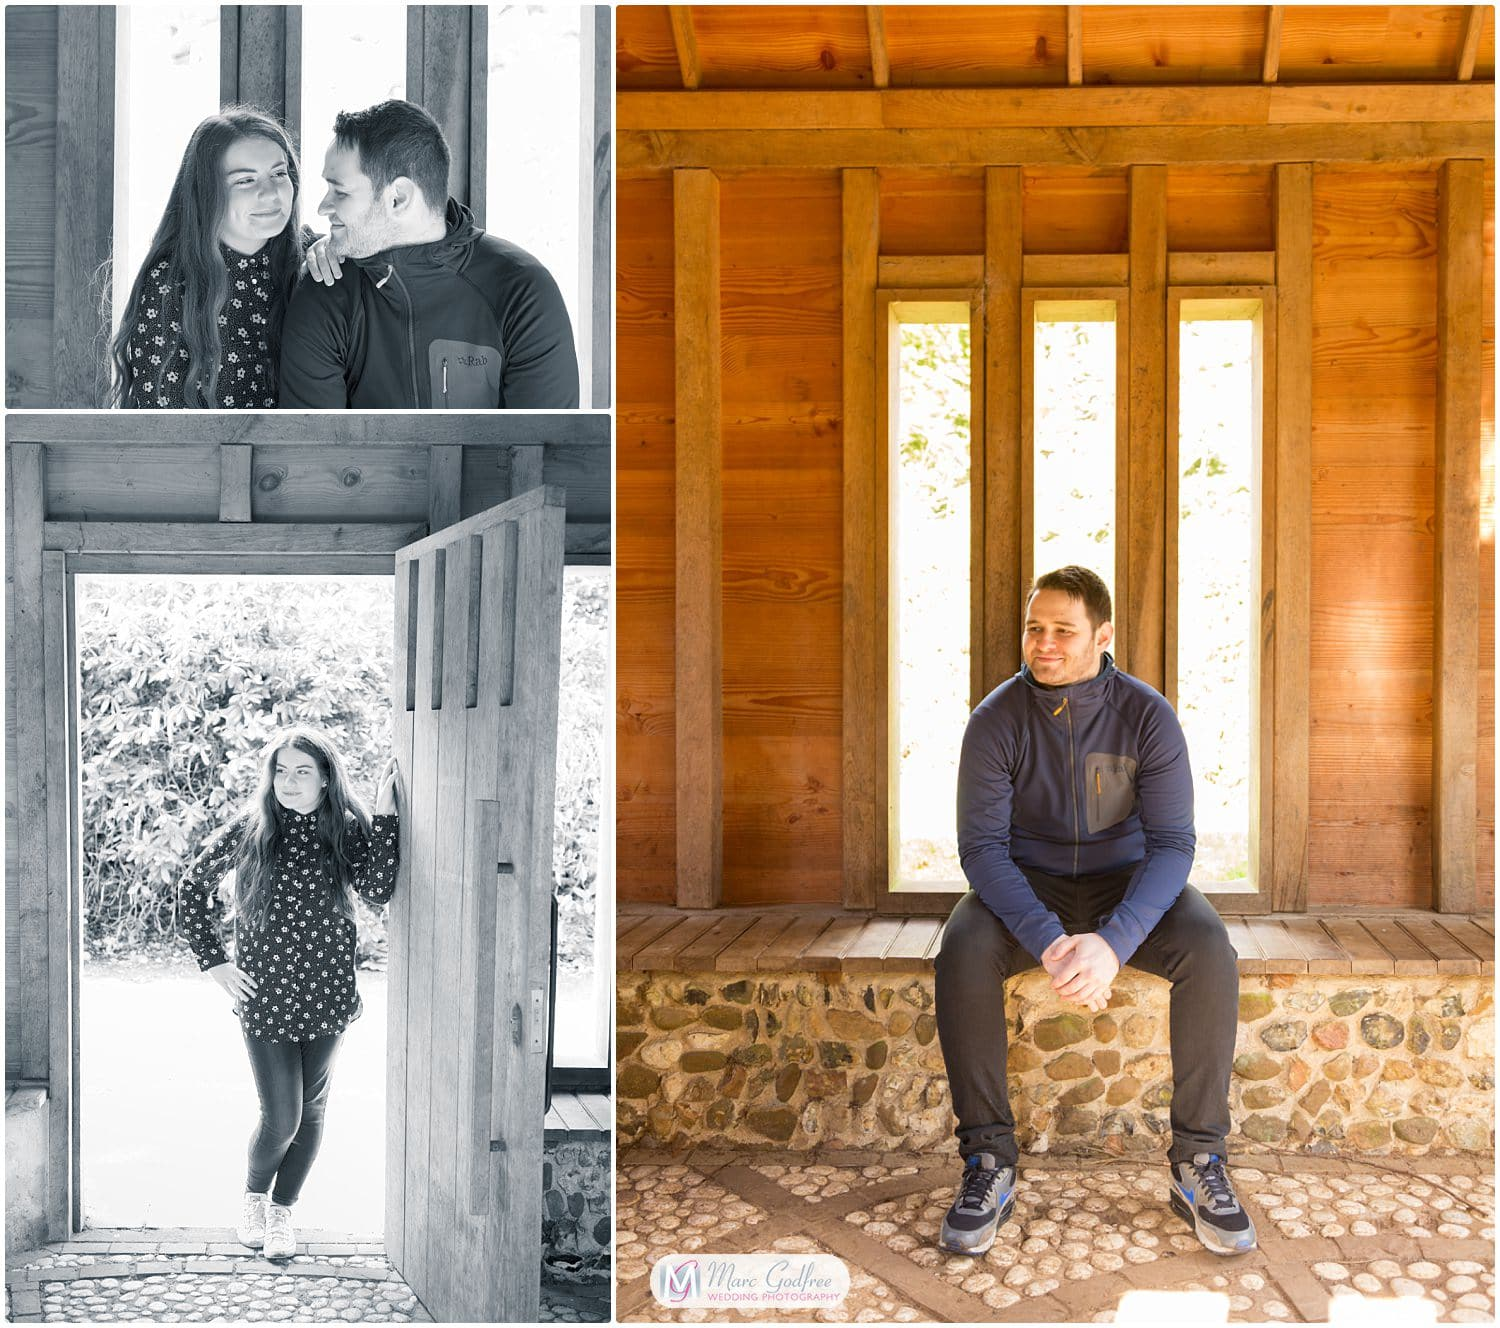 Sophie & Dan's Pre-wedding Session at Hylands House-3